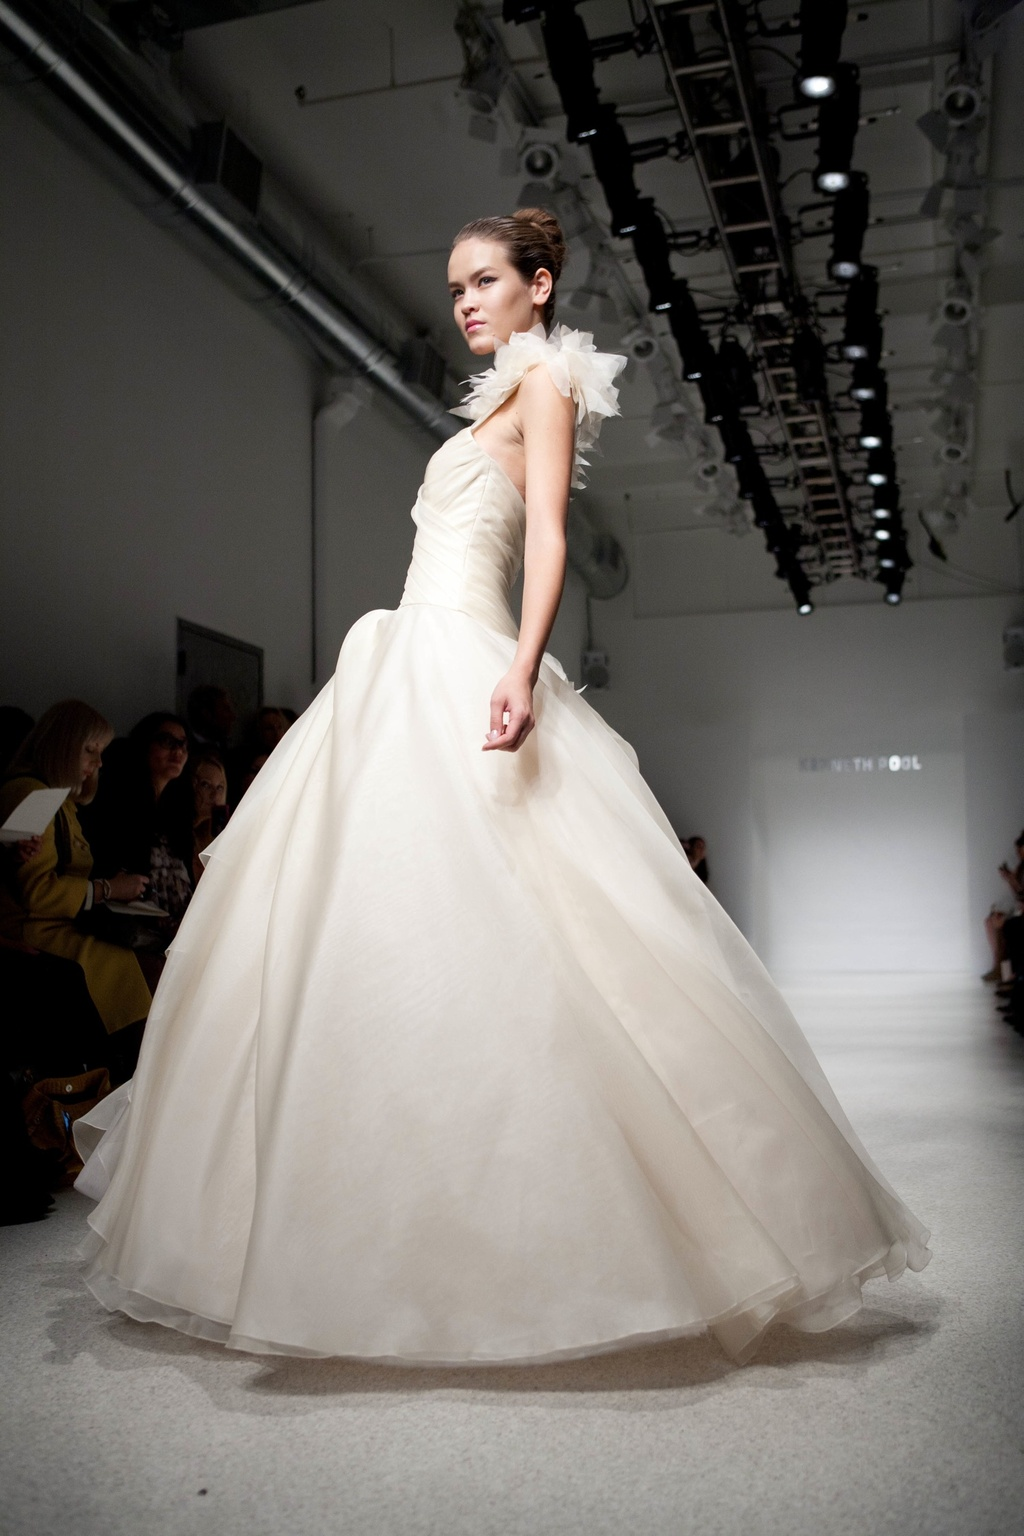 Ivory ballgown wedding dress by Kenneth Pool